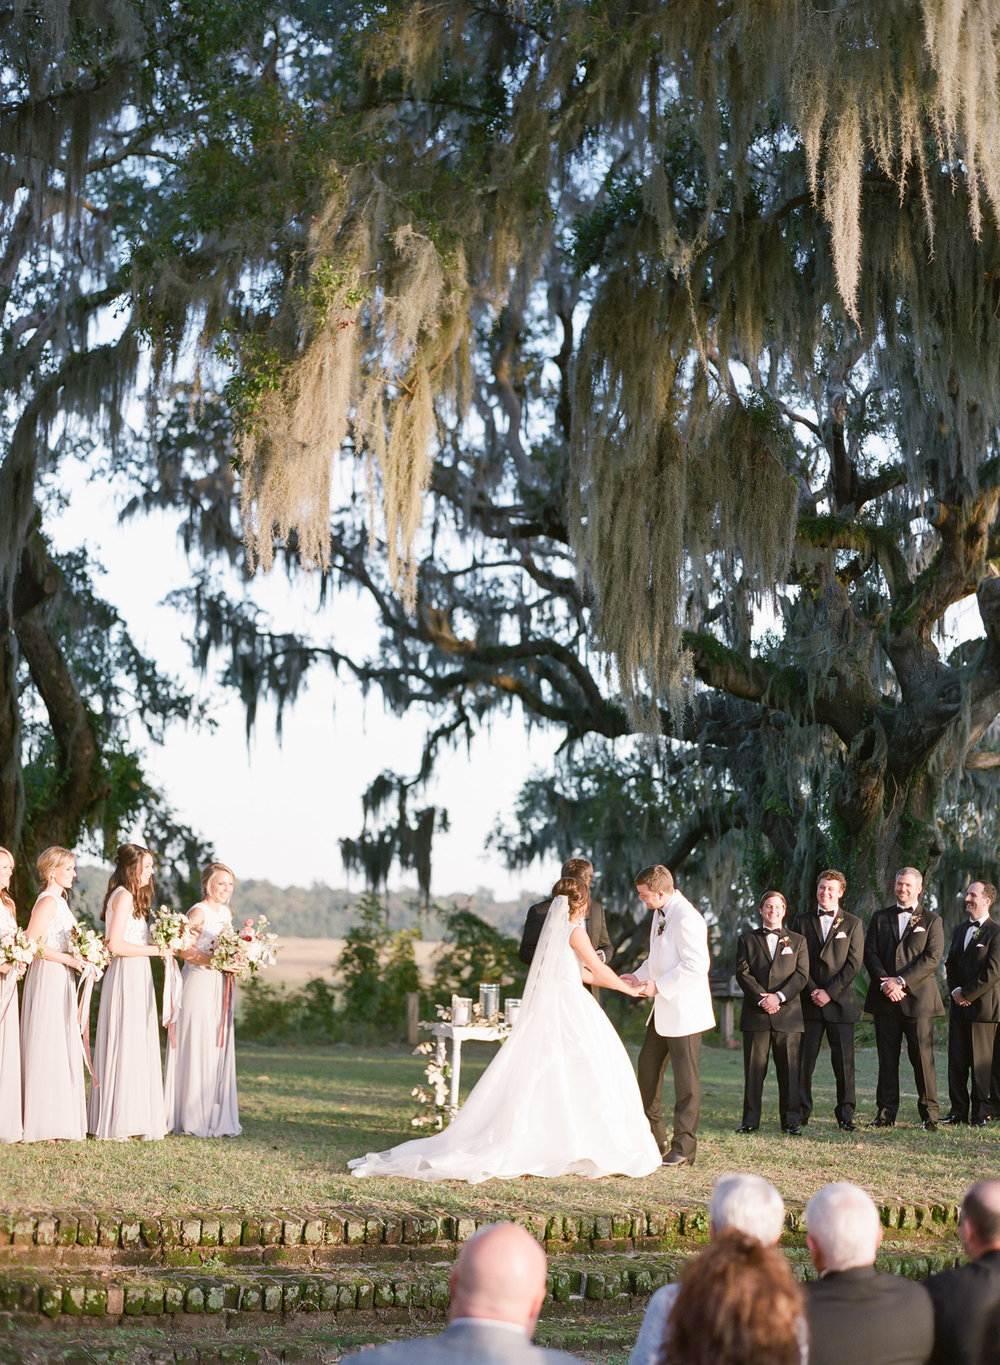 Charleston-Wedding-Photographer-84.jpg